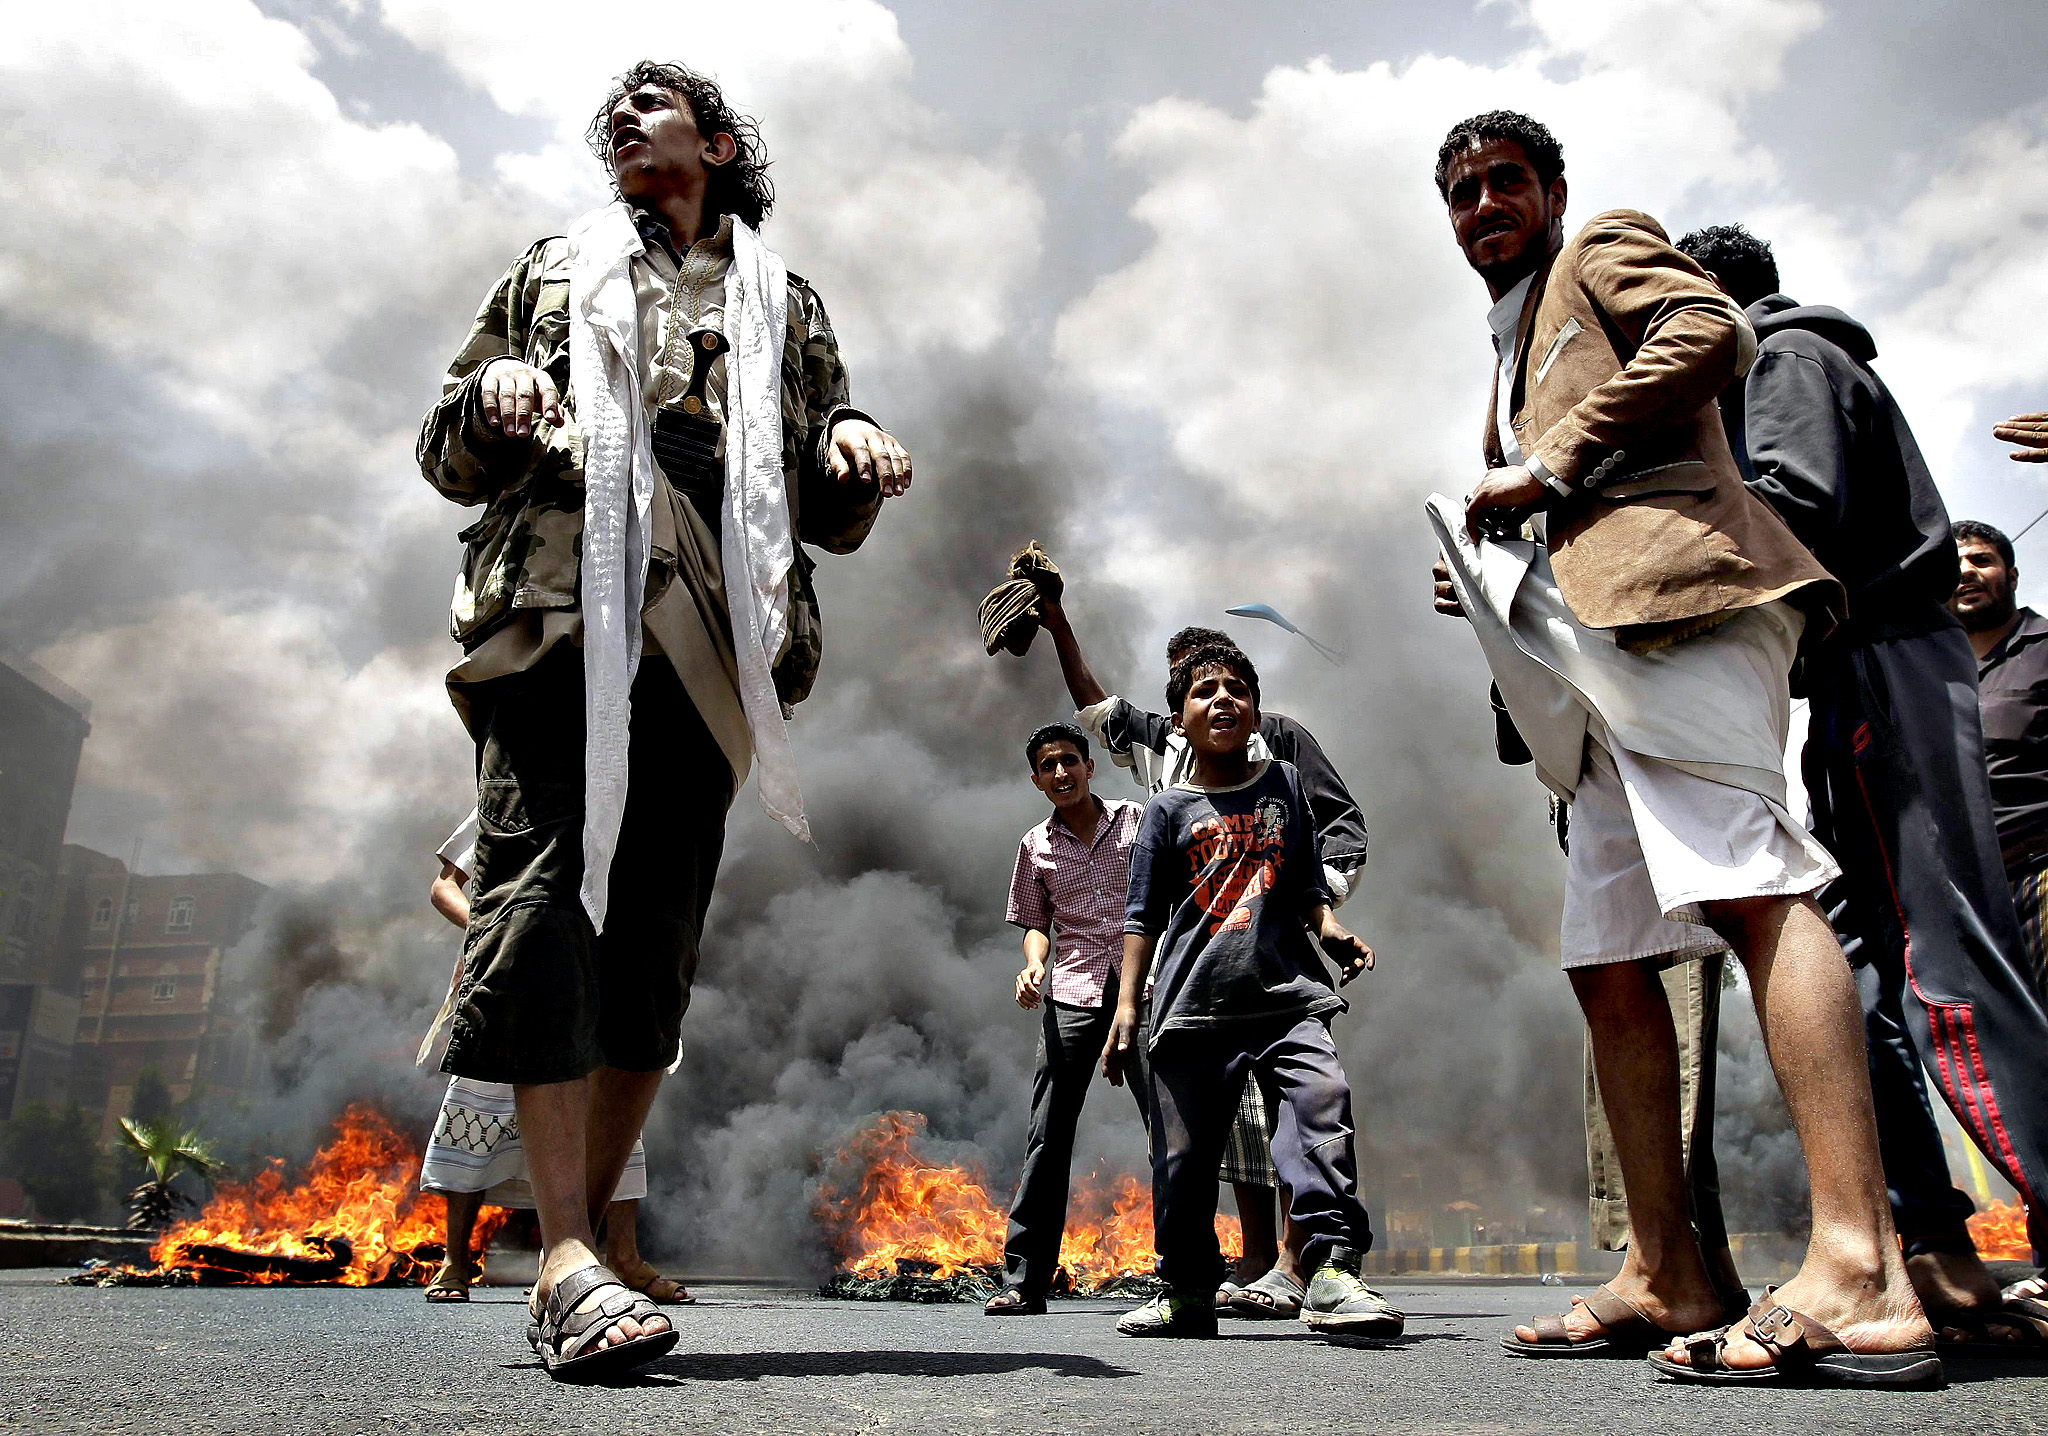 Protesters burn tyres during a demonstration against against Yemen's fuel shortages near the house of President Abdu Rabbu Mansour Hadi in Sanaa...Protesters burn tyres during a demonstration against against Yemen's fuel shortages near the house of President Abdu Rabbu Mansour Hadi in Sanaa June 11, 2014.